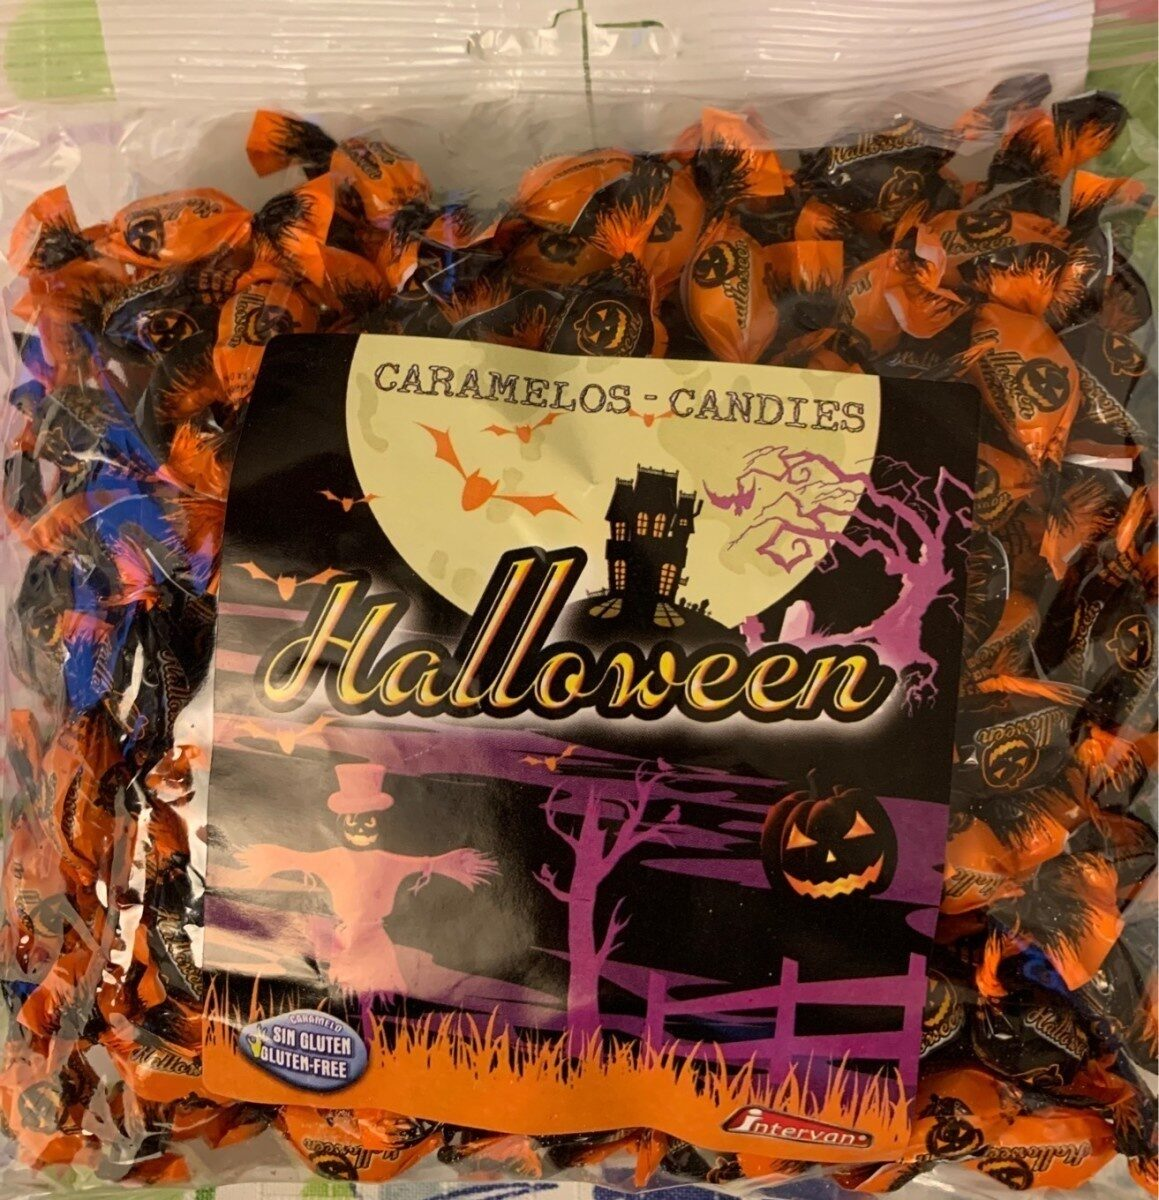 Caramelos candie - Product - fr